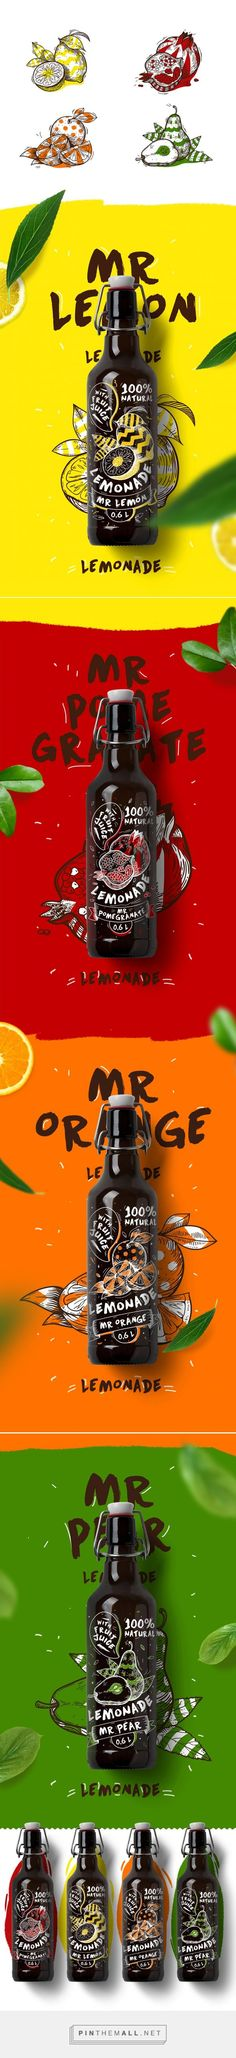 Создание упаковки для газированных напитков via Rina Rusyaeva on Behance curated by Packaging Diva PD. Thanks to team member Cynthia who found this great colorful packaging pin.